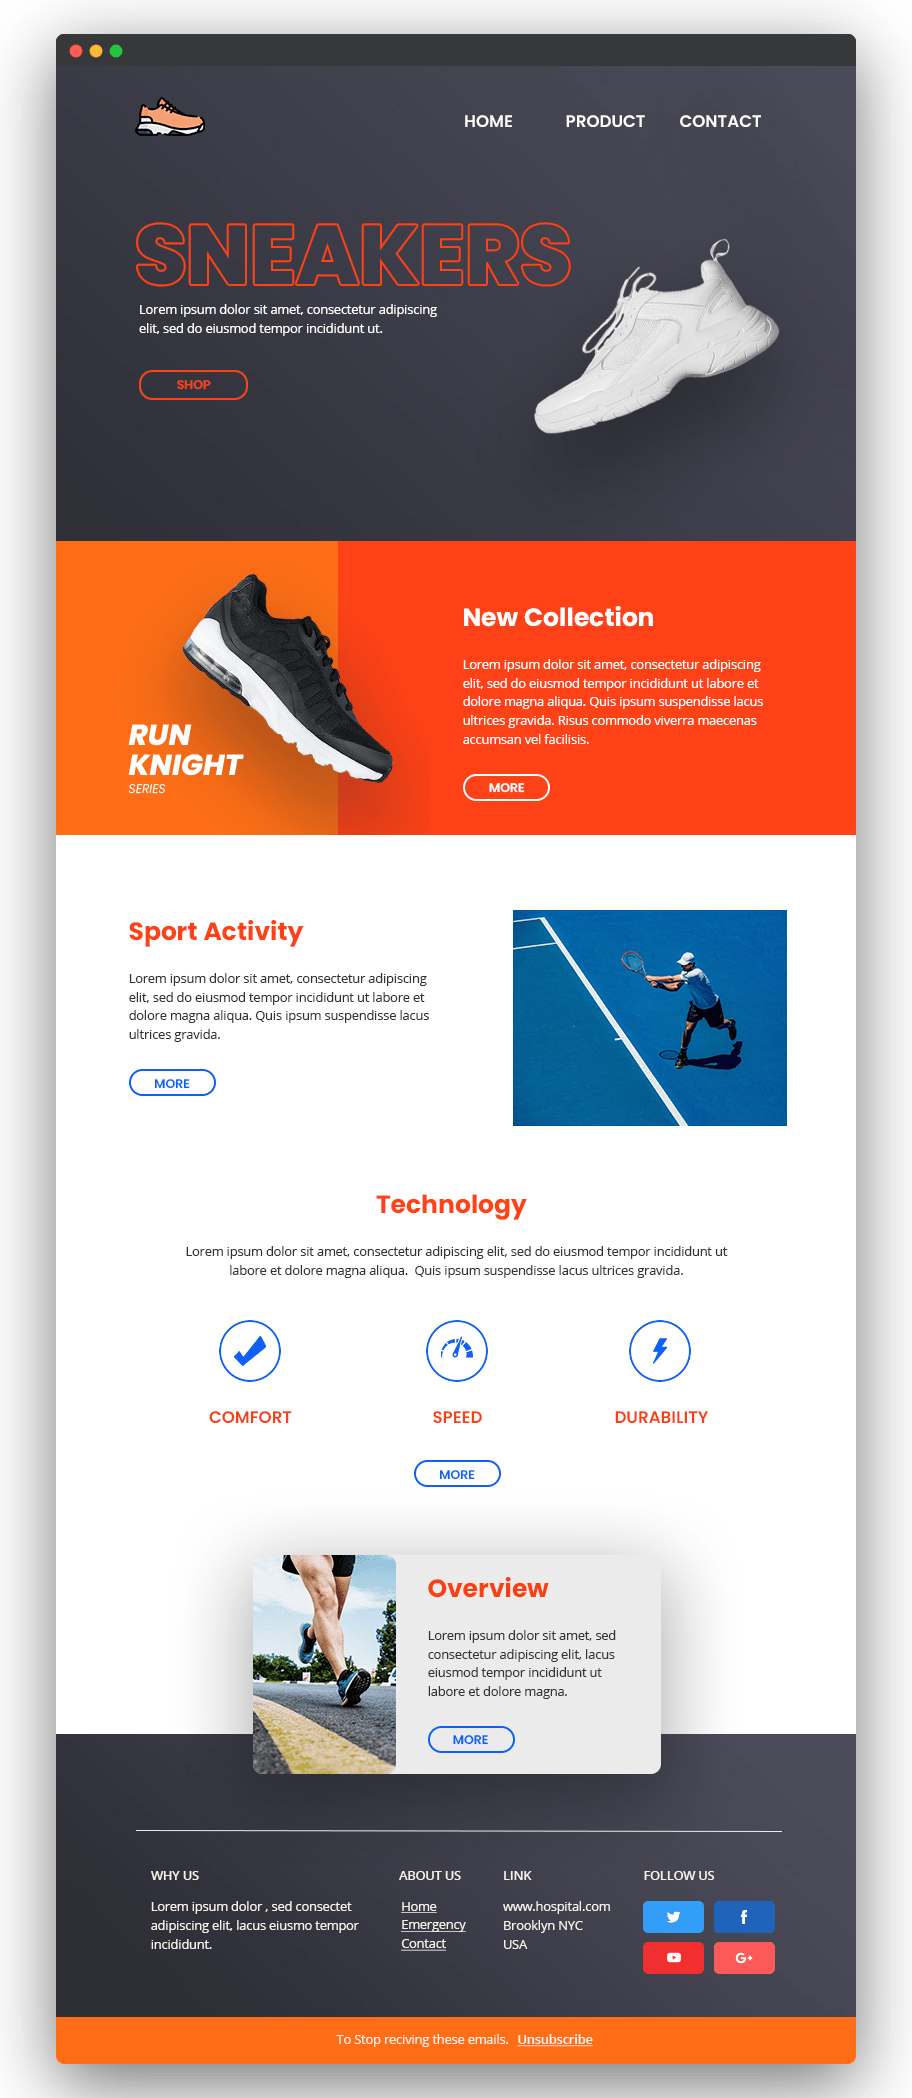 Image of newsletter with shoes